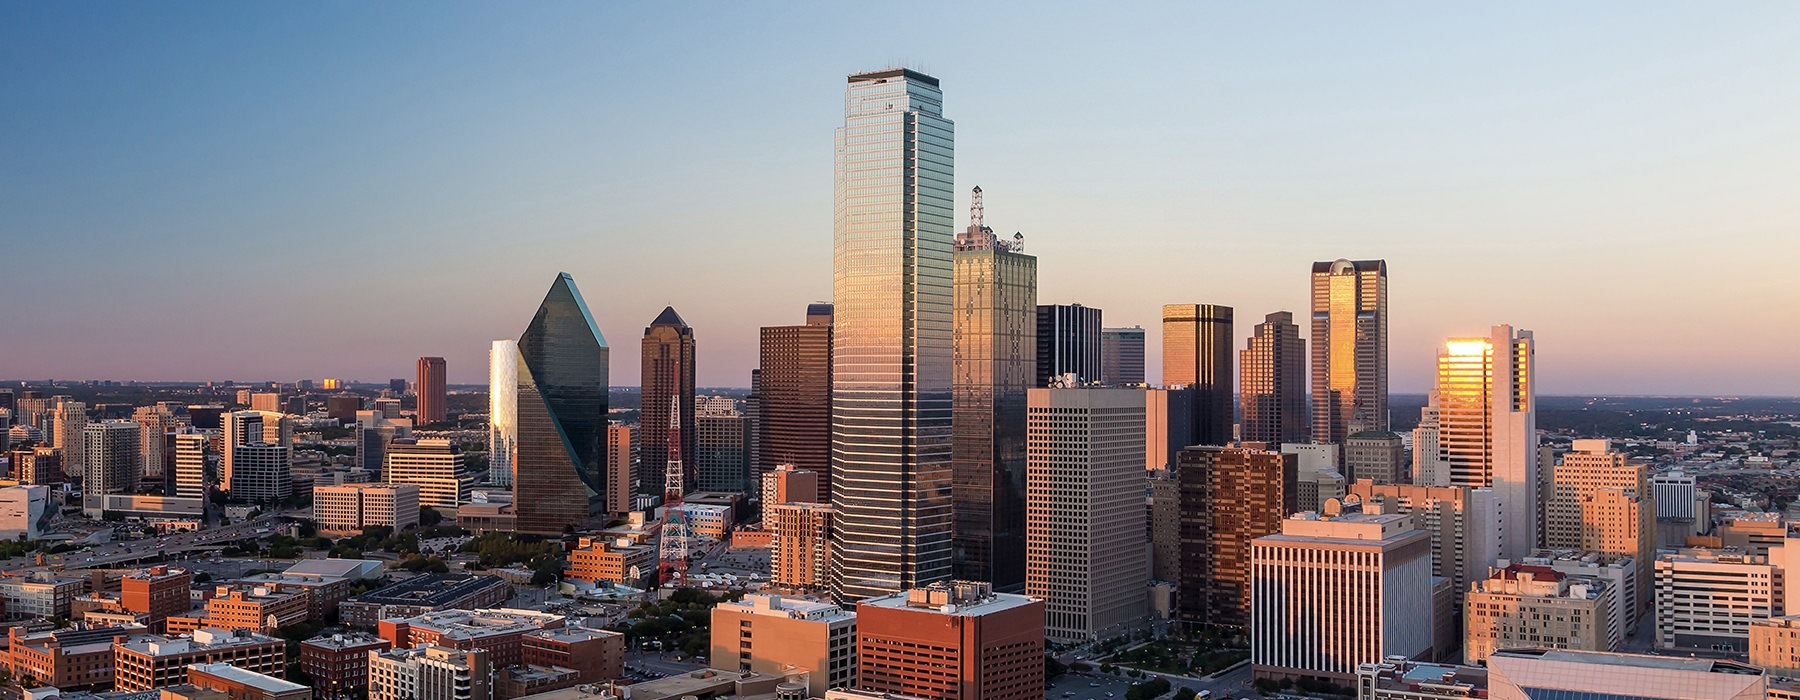 skyline image of downtown dallas texas